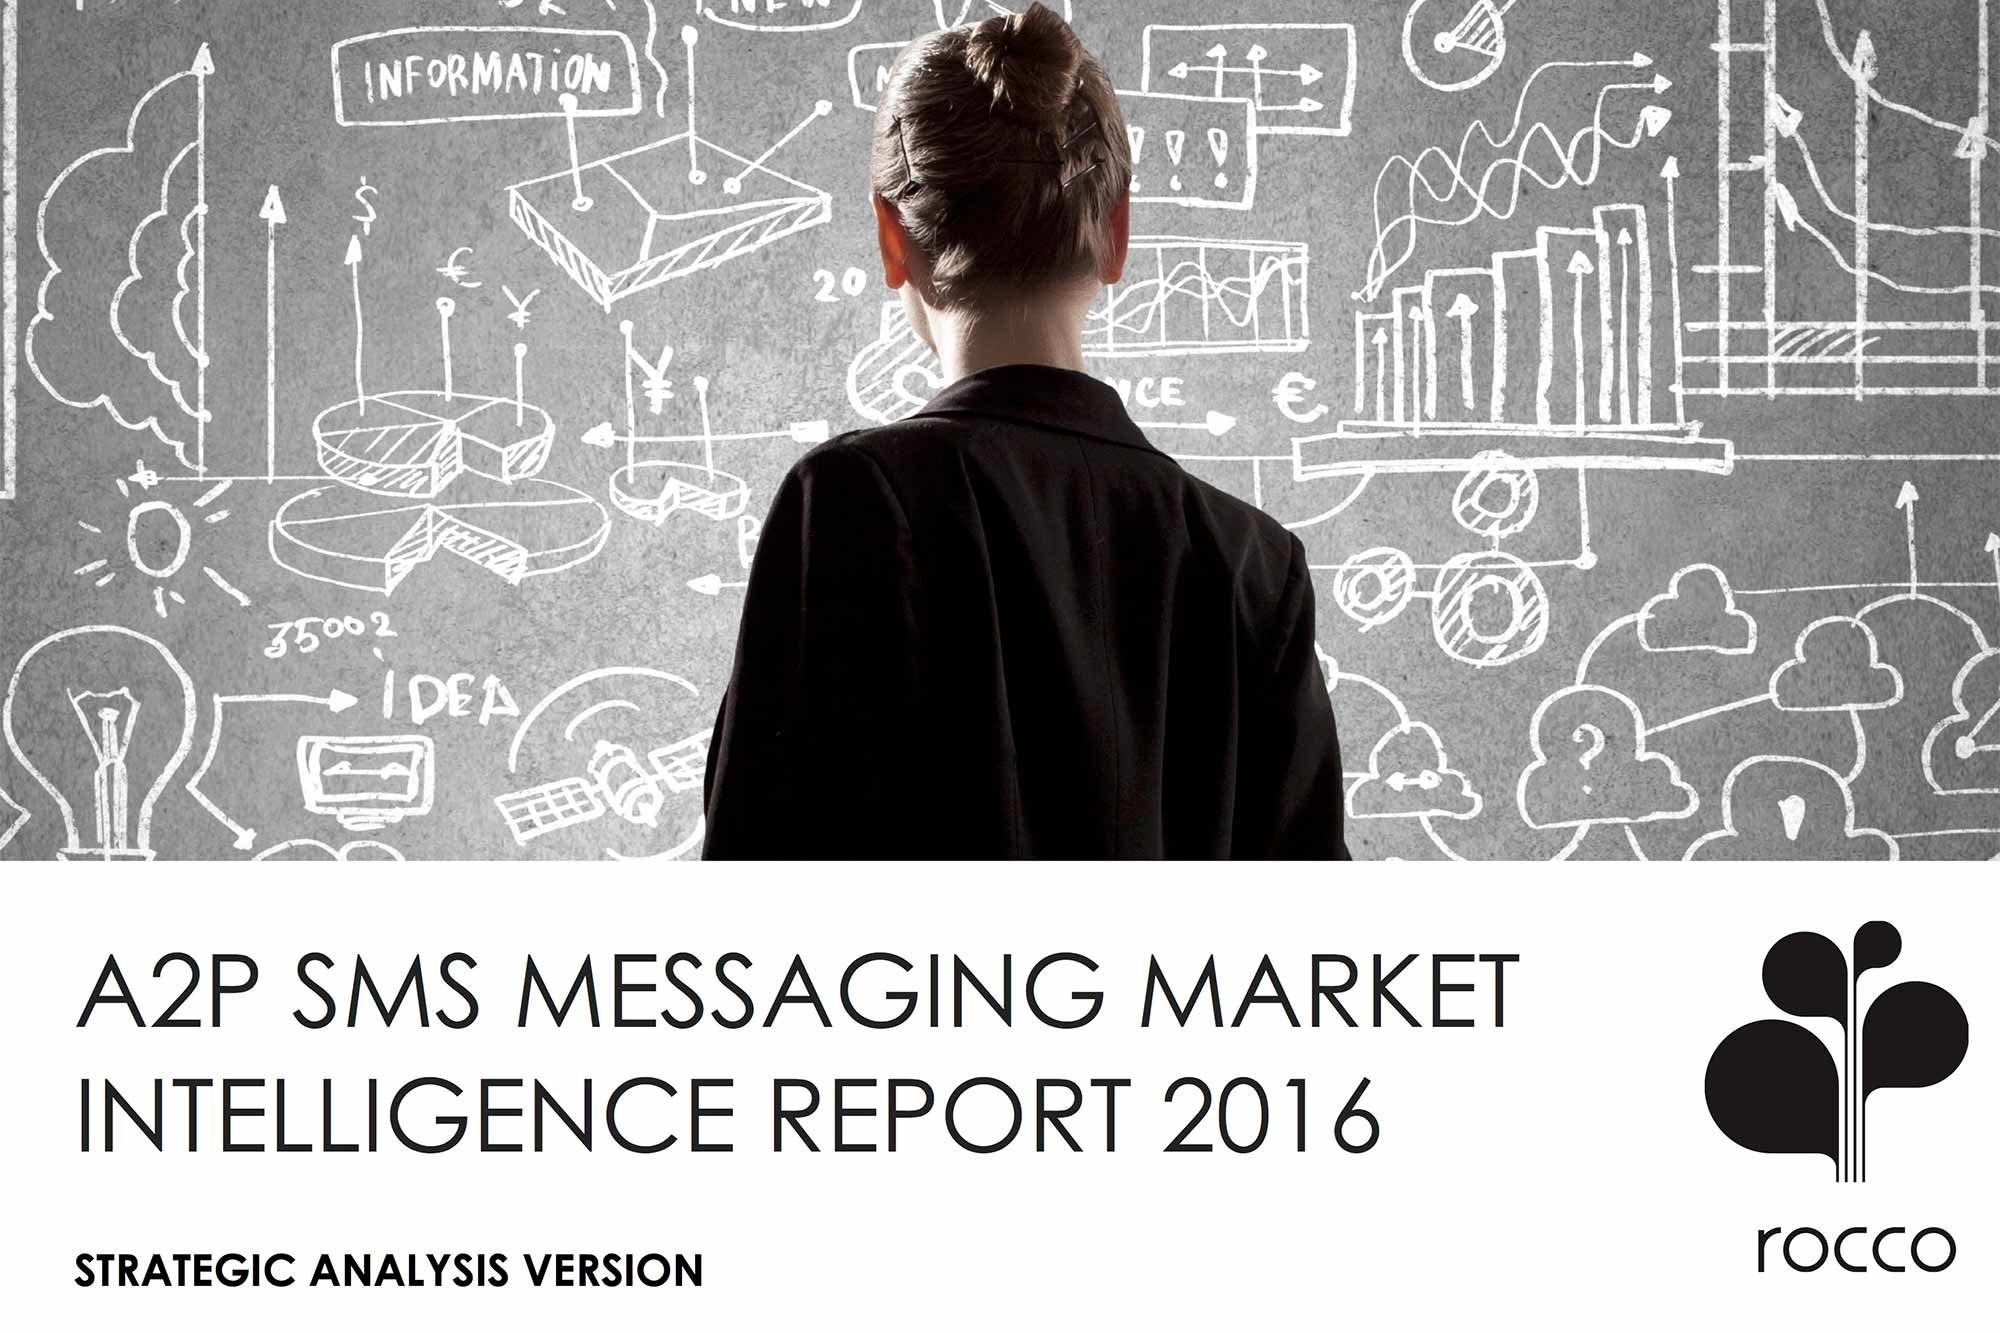 MobiWeb participates in ROCCO's A2P SMS Messaging Market Intelligence Report 2016